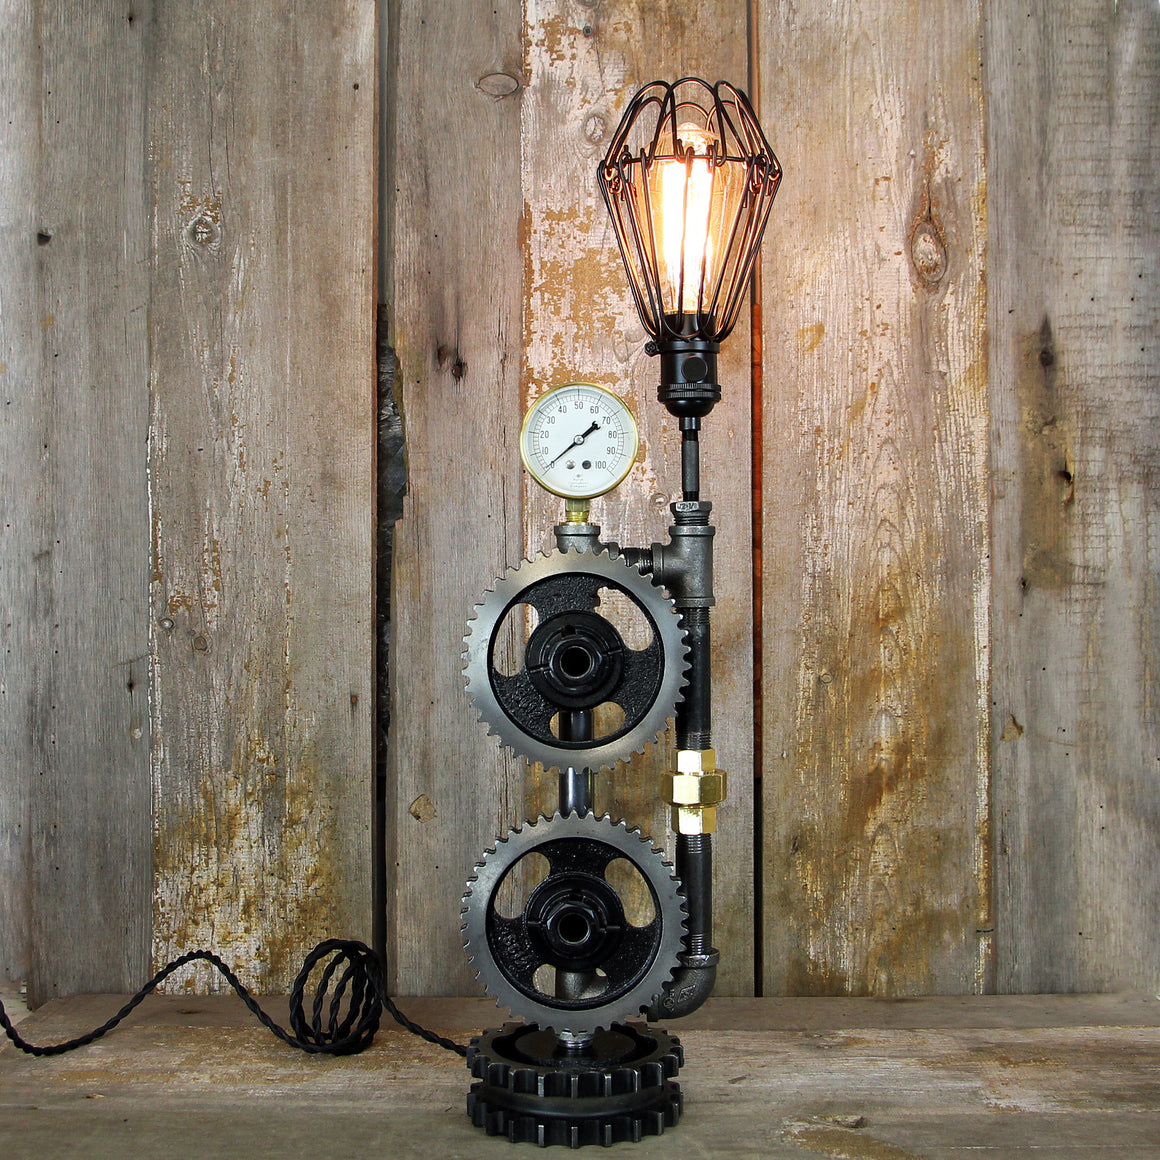 Industrial Steampunk Table Lamp No. 2001 - The Lighting Works